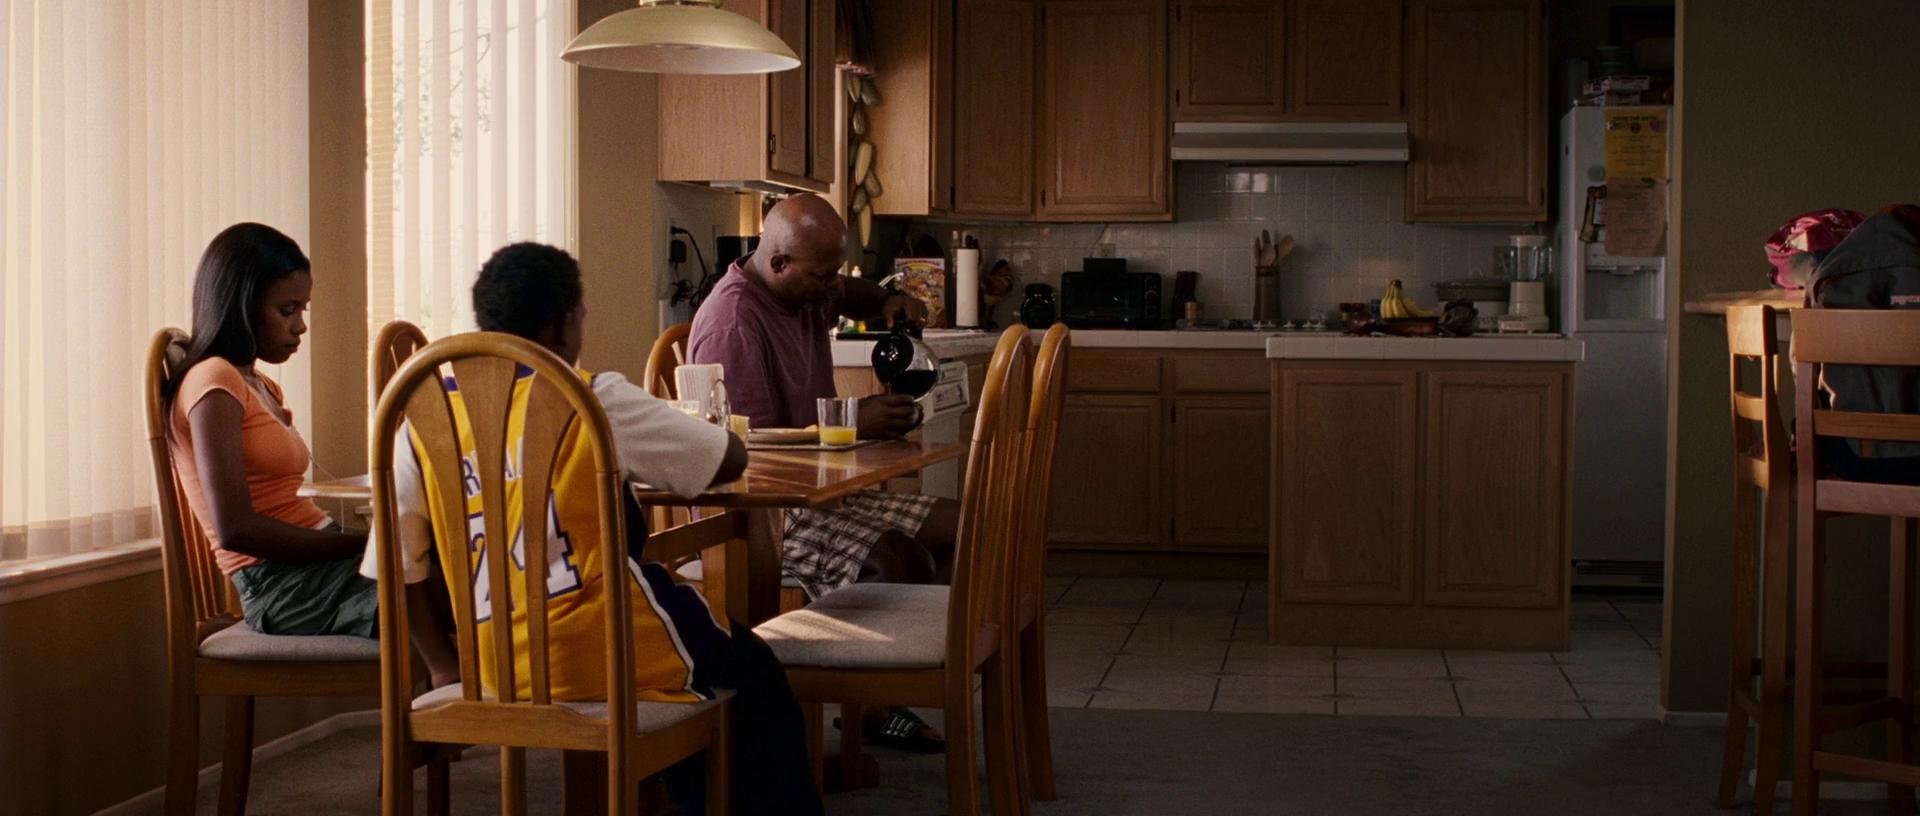 Lakeview terrace movie download in hd dvd divx ipad for Movies at the terrace